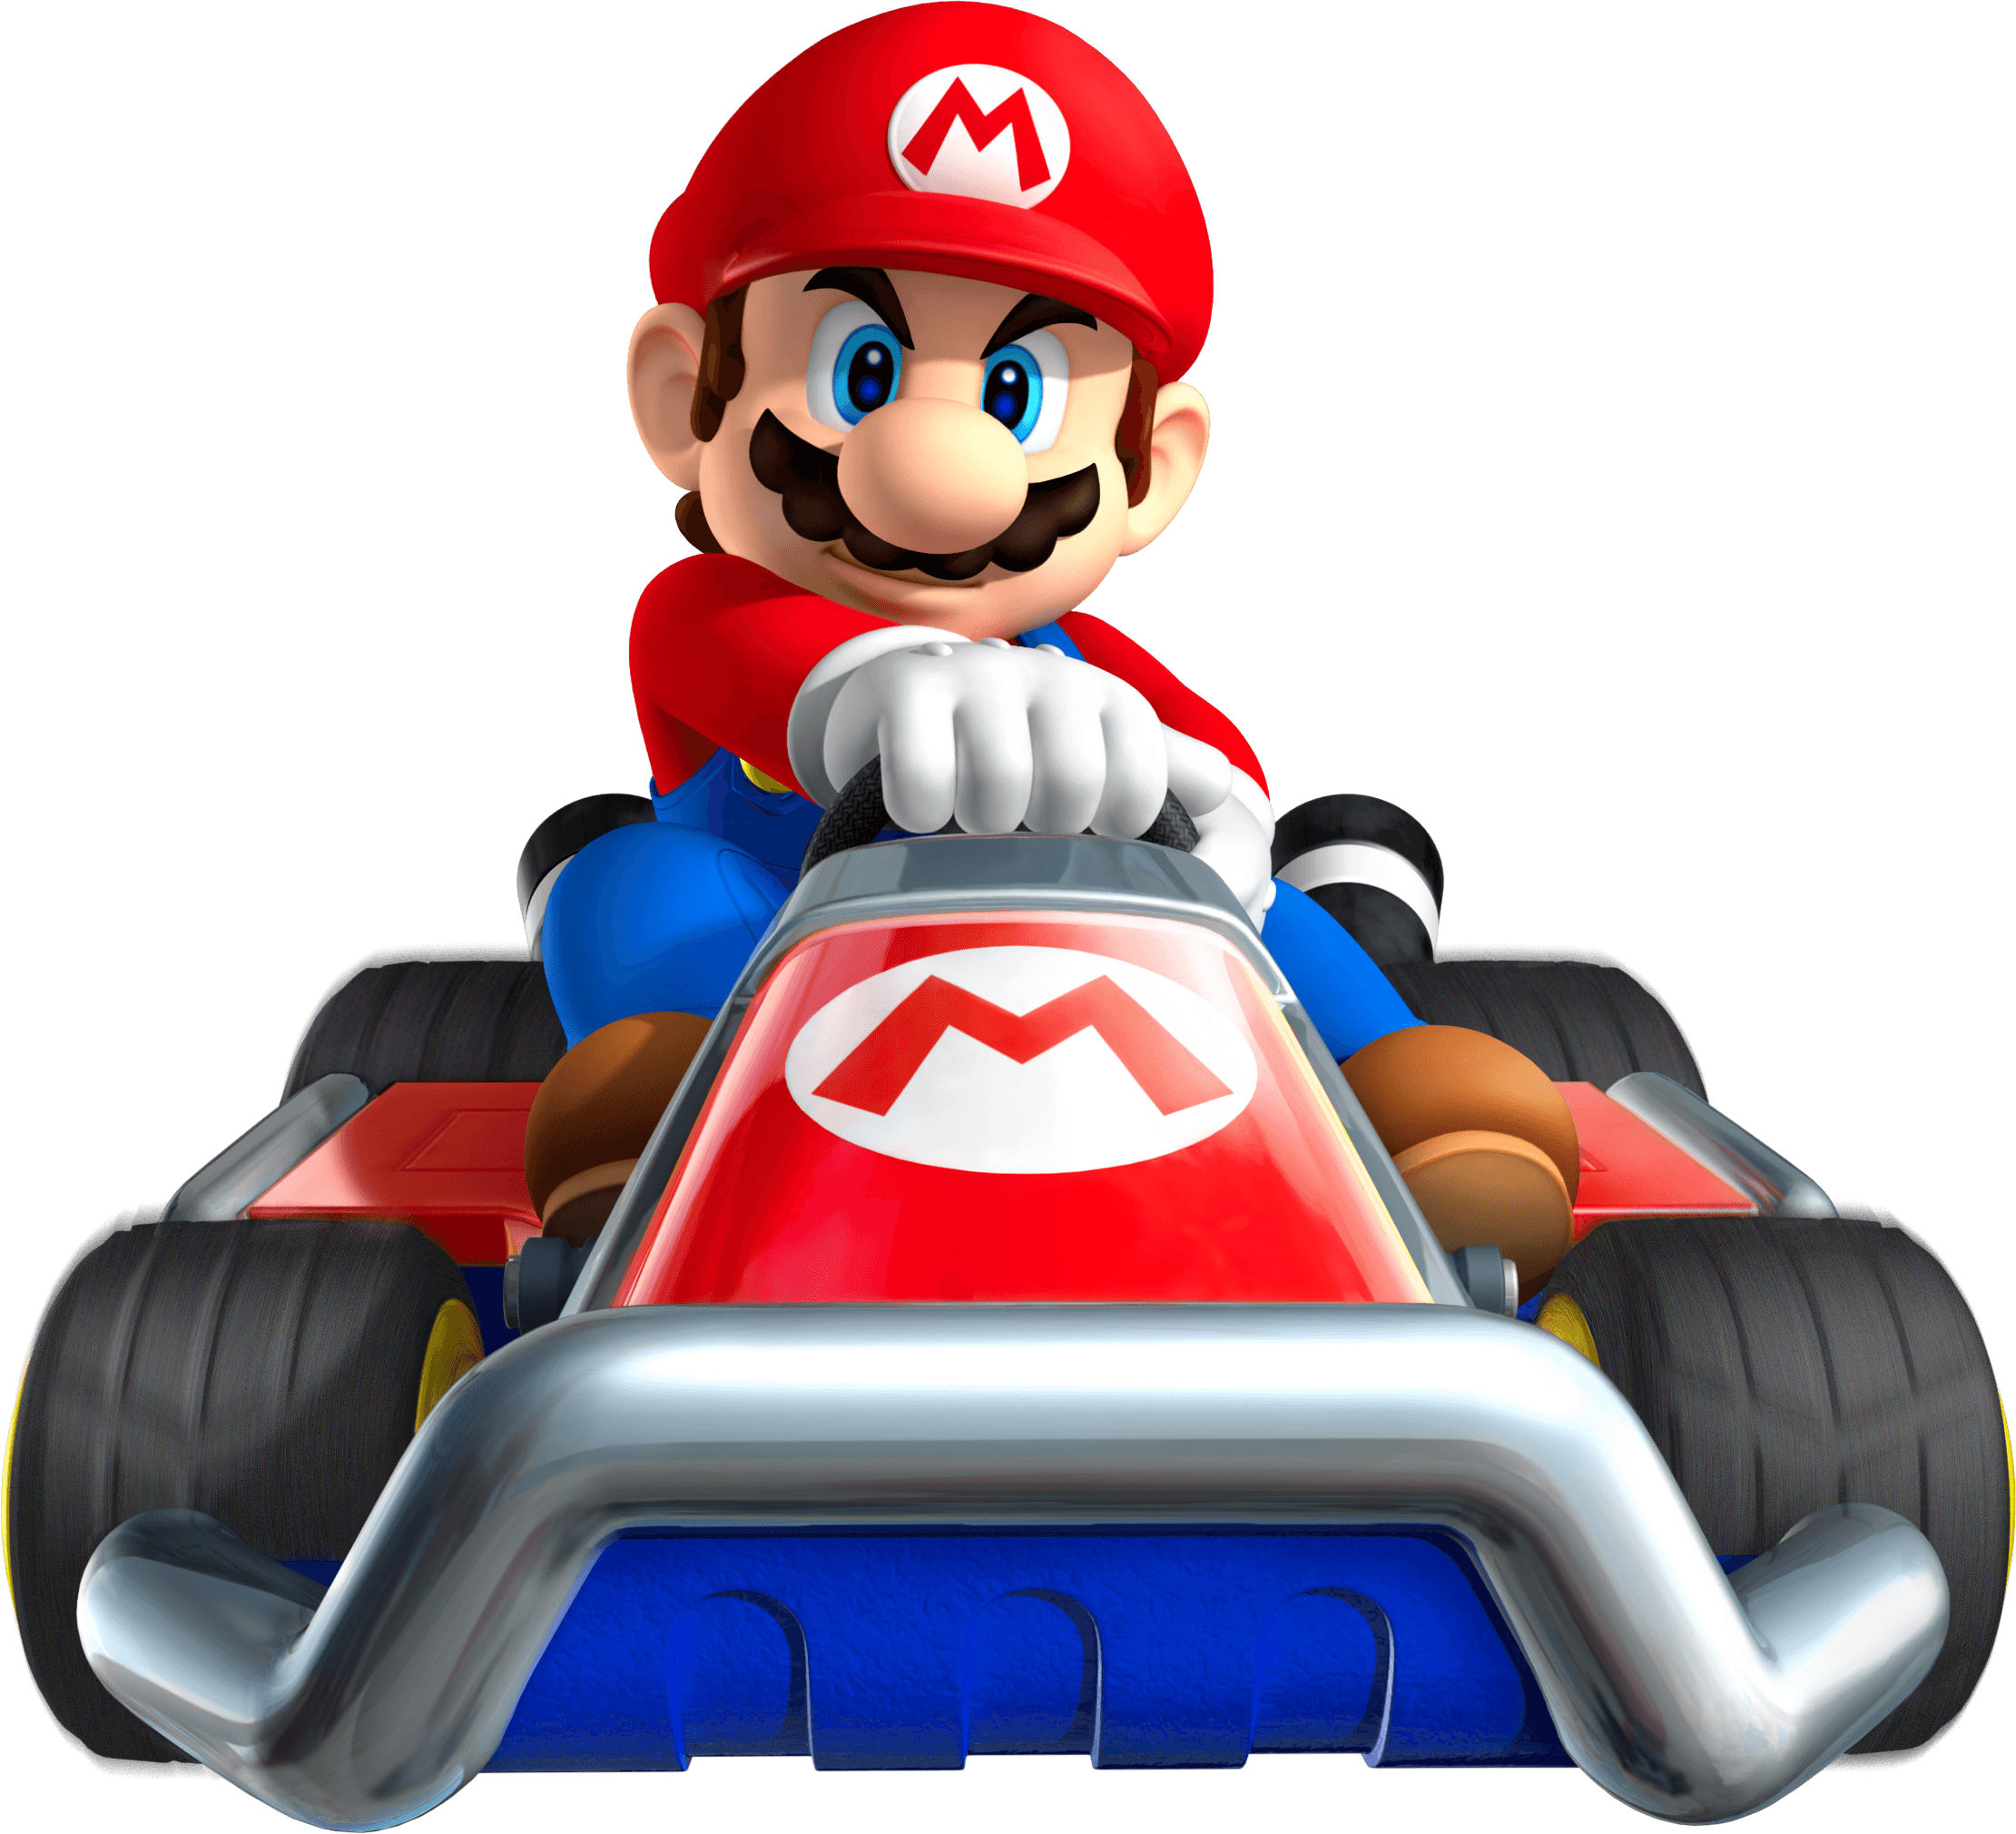 mario kart 7 3ds artwork including karts kart bodies